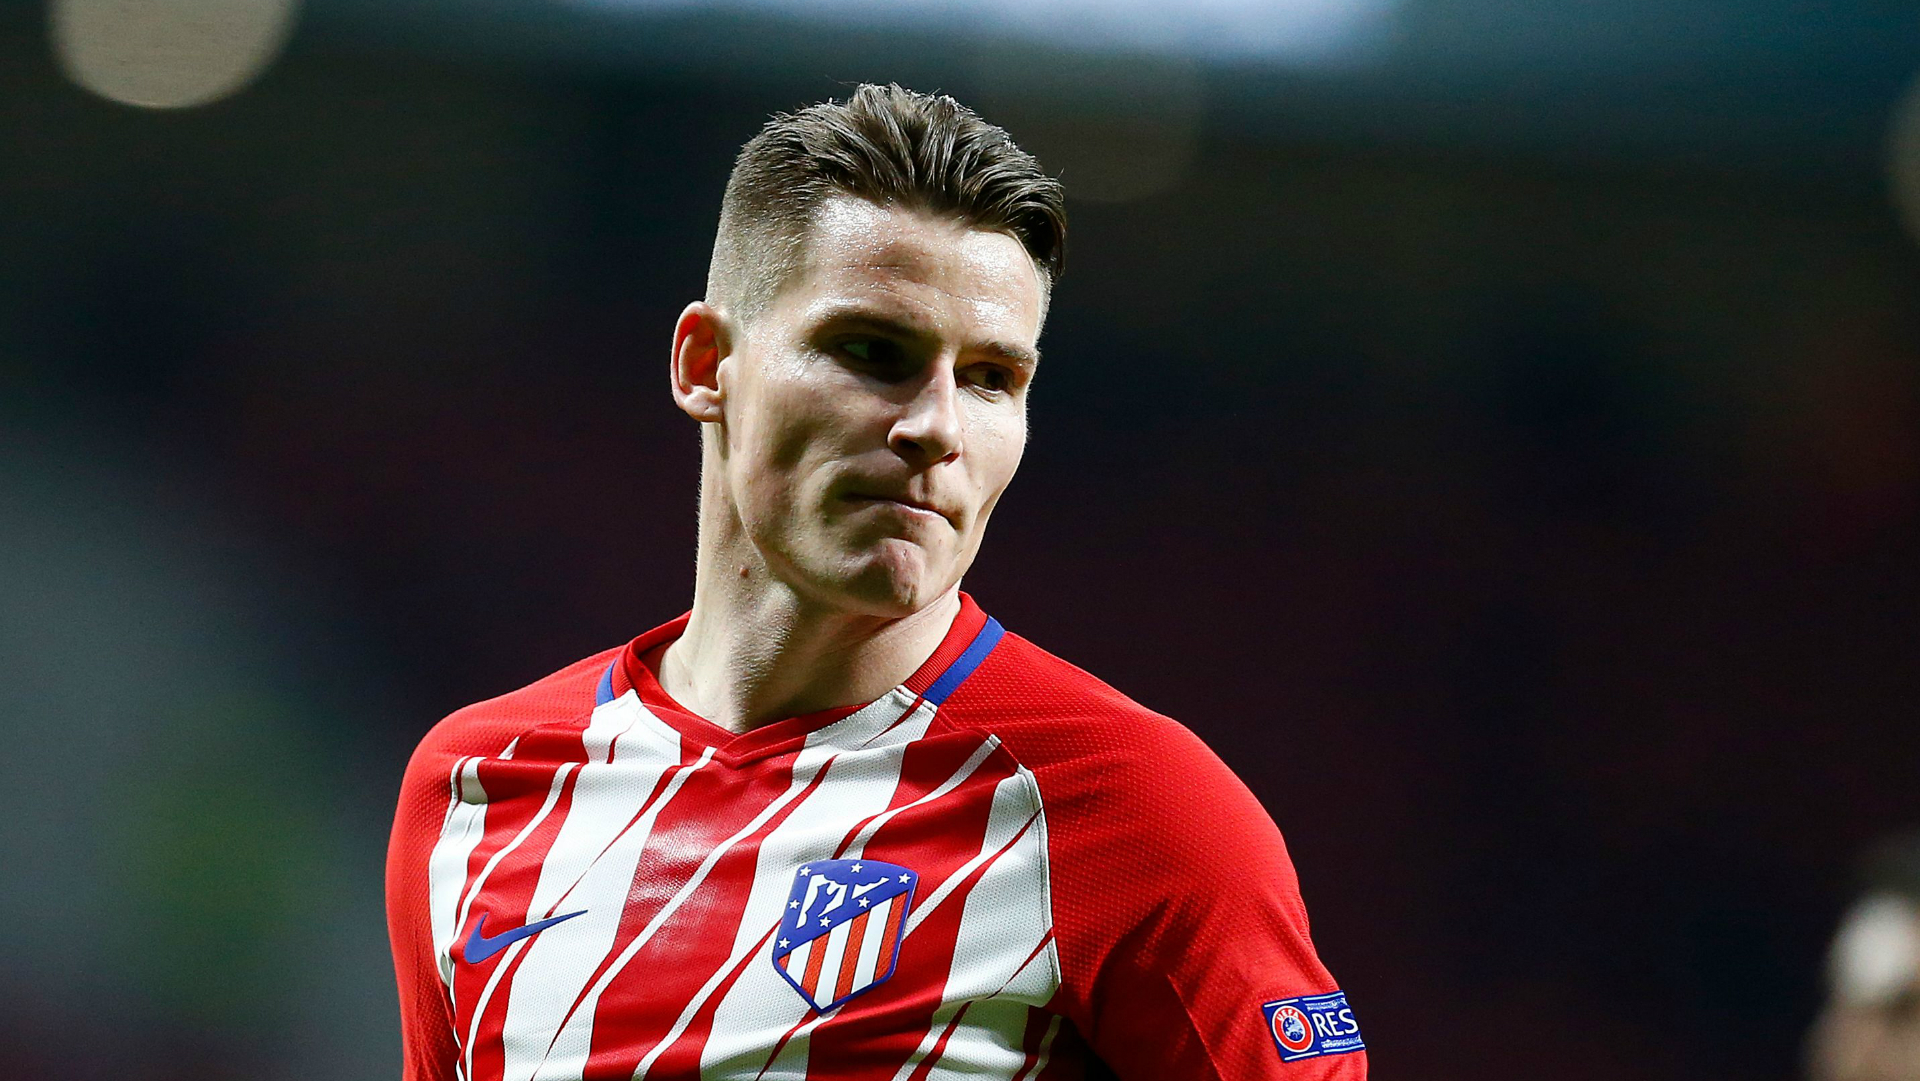 Transfers: Valencia binds Kevin Gameiro for 17 million